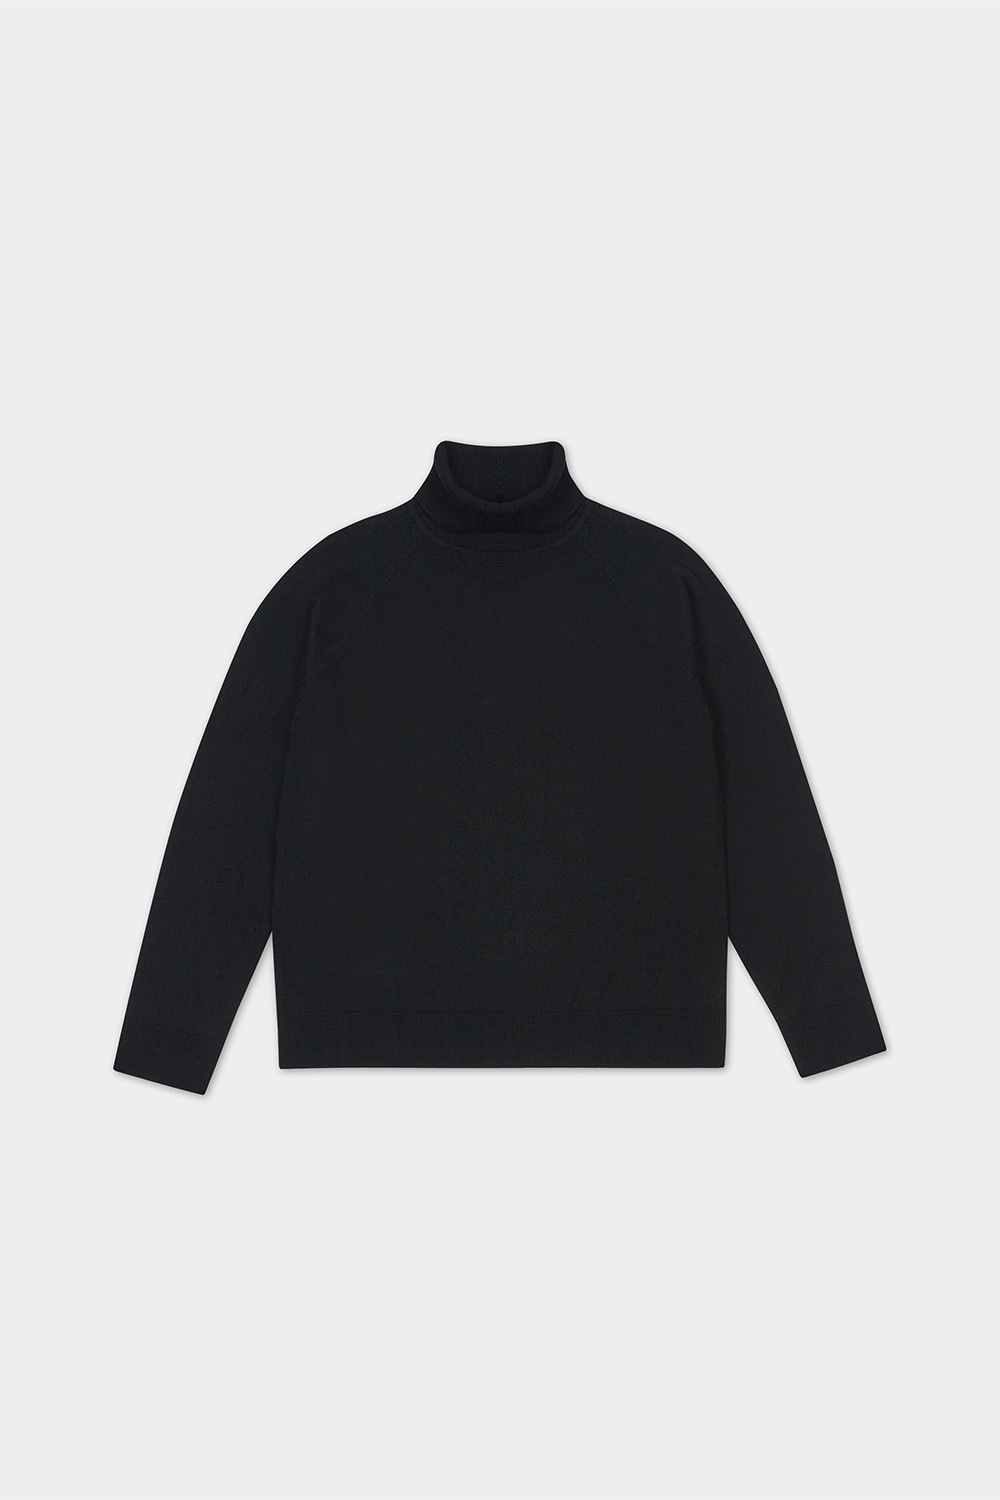 MERINO WOOL TURTLENECK KNIT (BLACK)